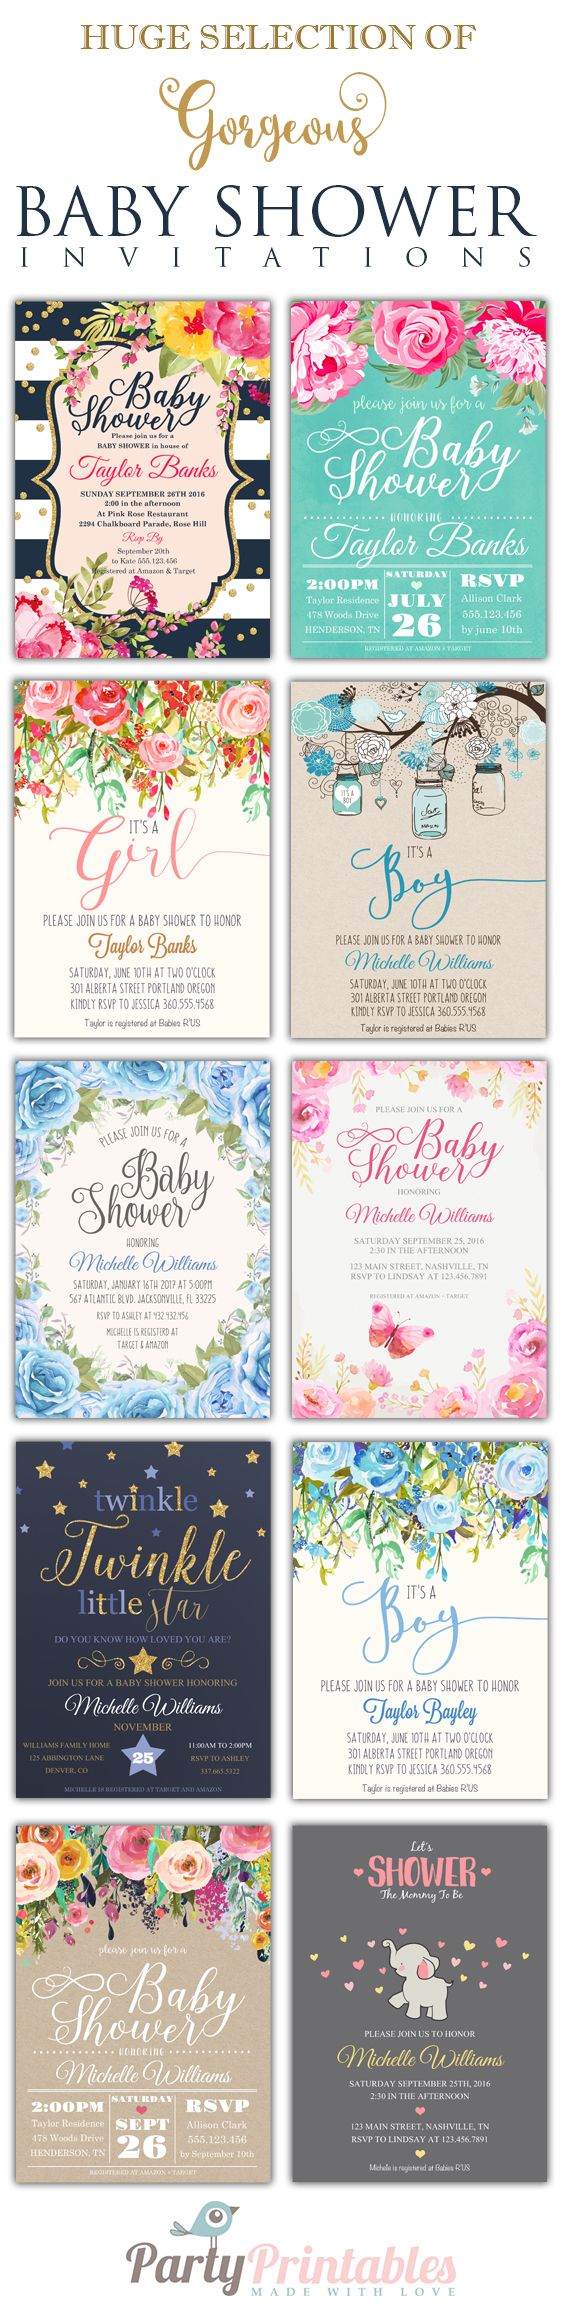 unique homemade baby shower invitation ideas%0A Editable PDF Baby Shower Invitation DIY  u     Elegant Vintage Watercolor  Flowers  u     Instant Download Printable Edit in Adobe Reader   Shower  invitations